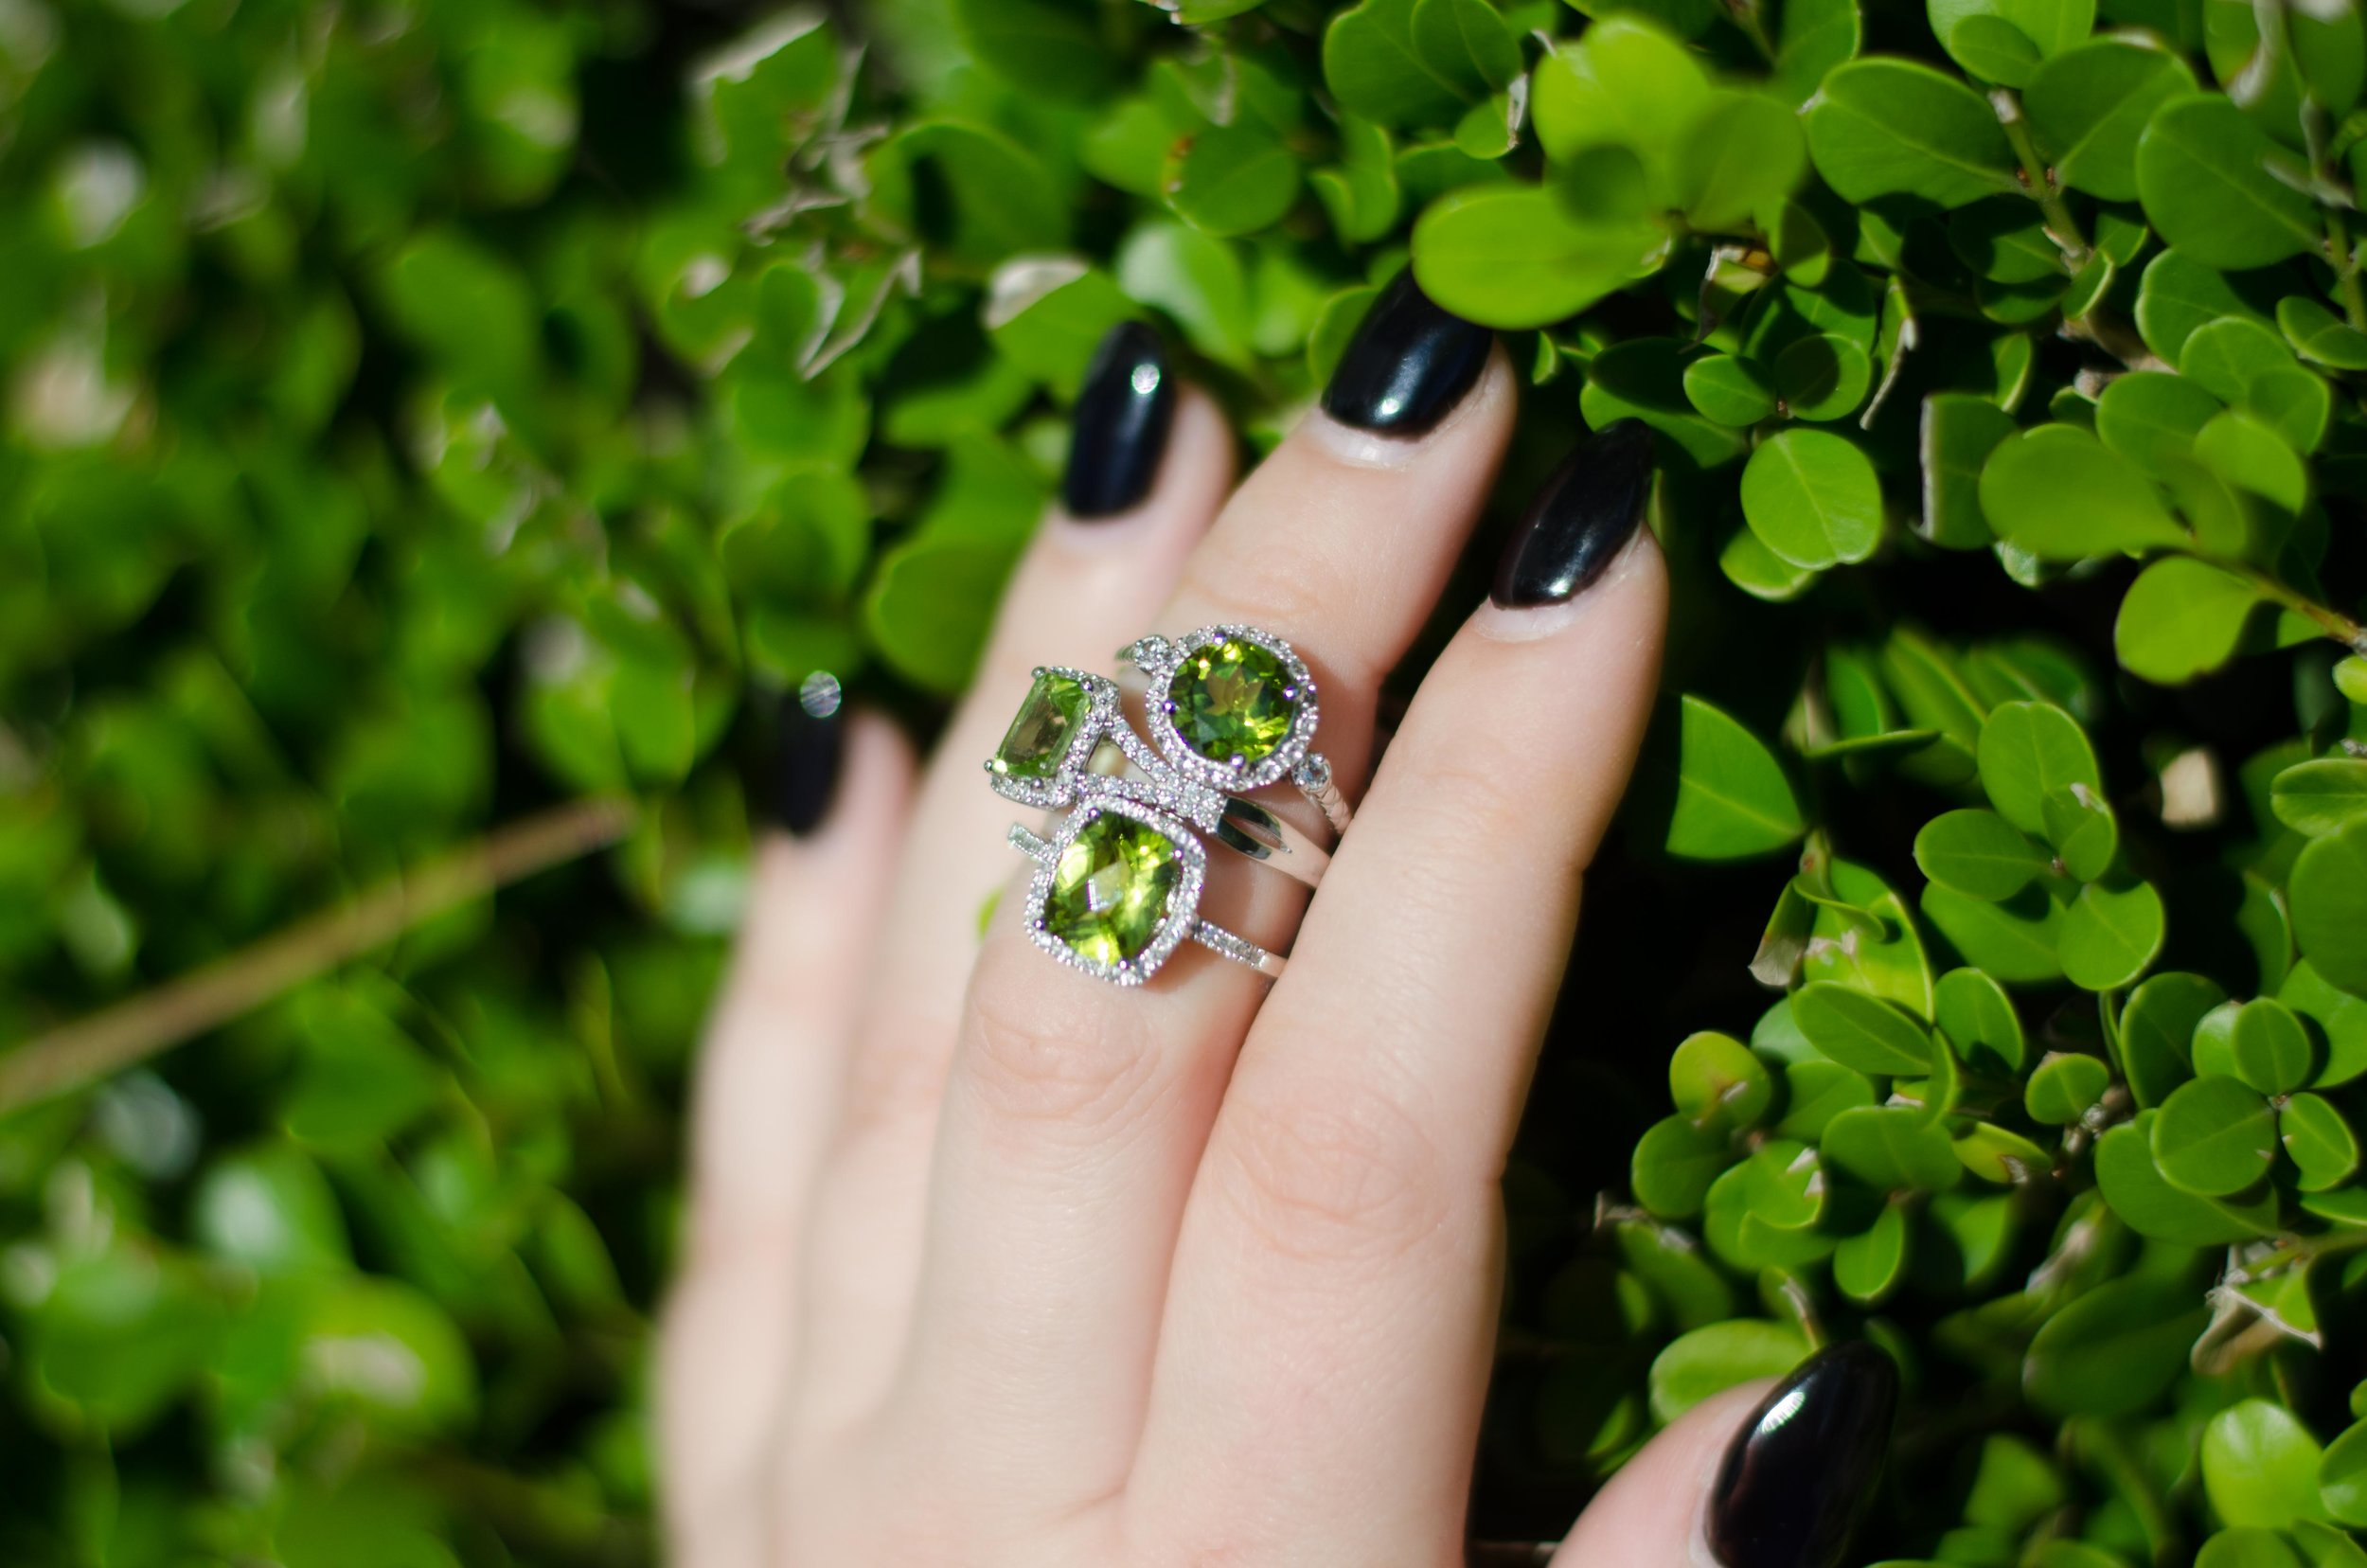 We have stunning peridot rings in a variety of shapes and sizes! They are so brilliant with their vibrant, summery green hues.